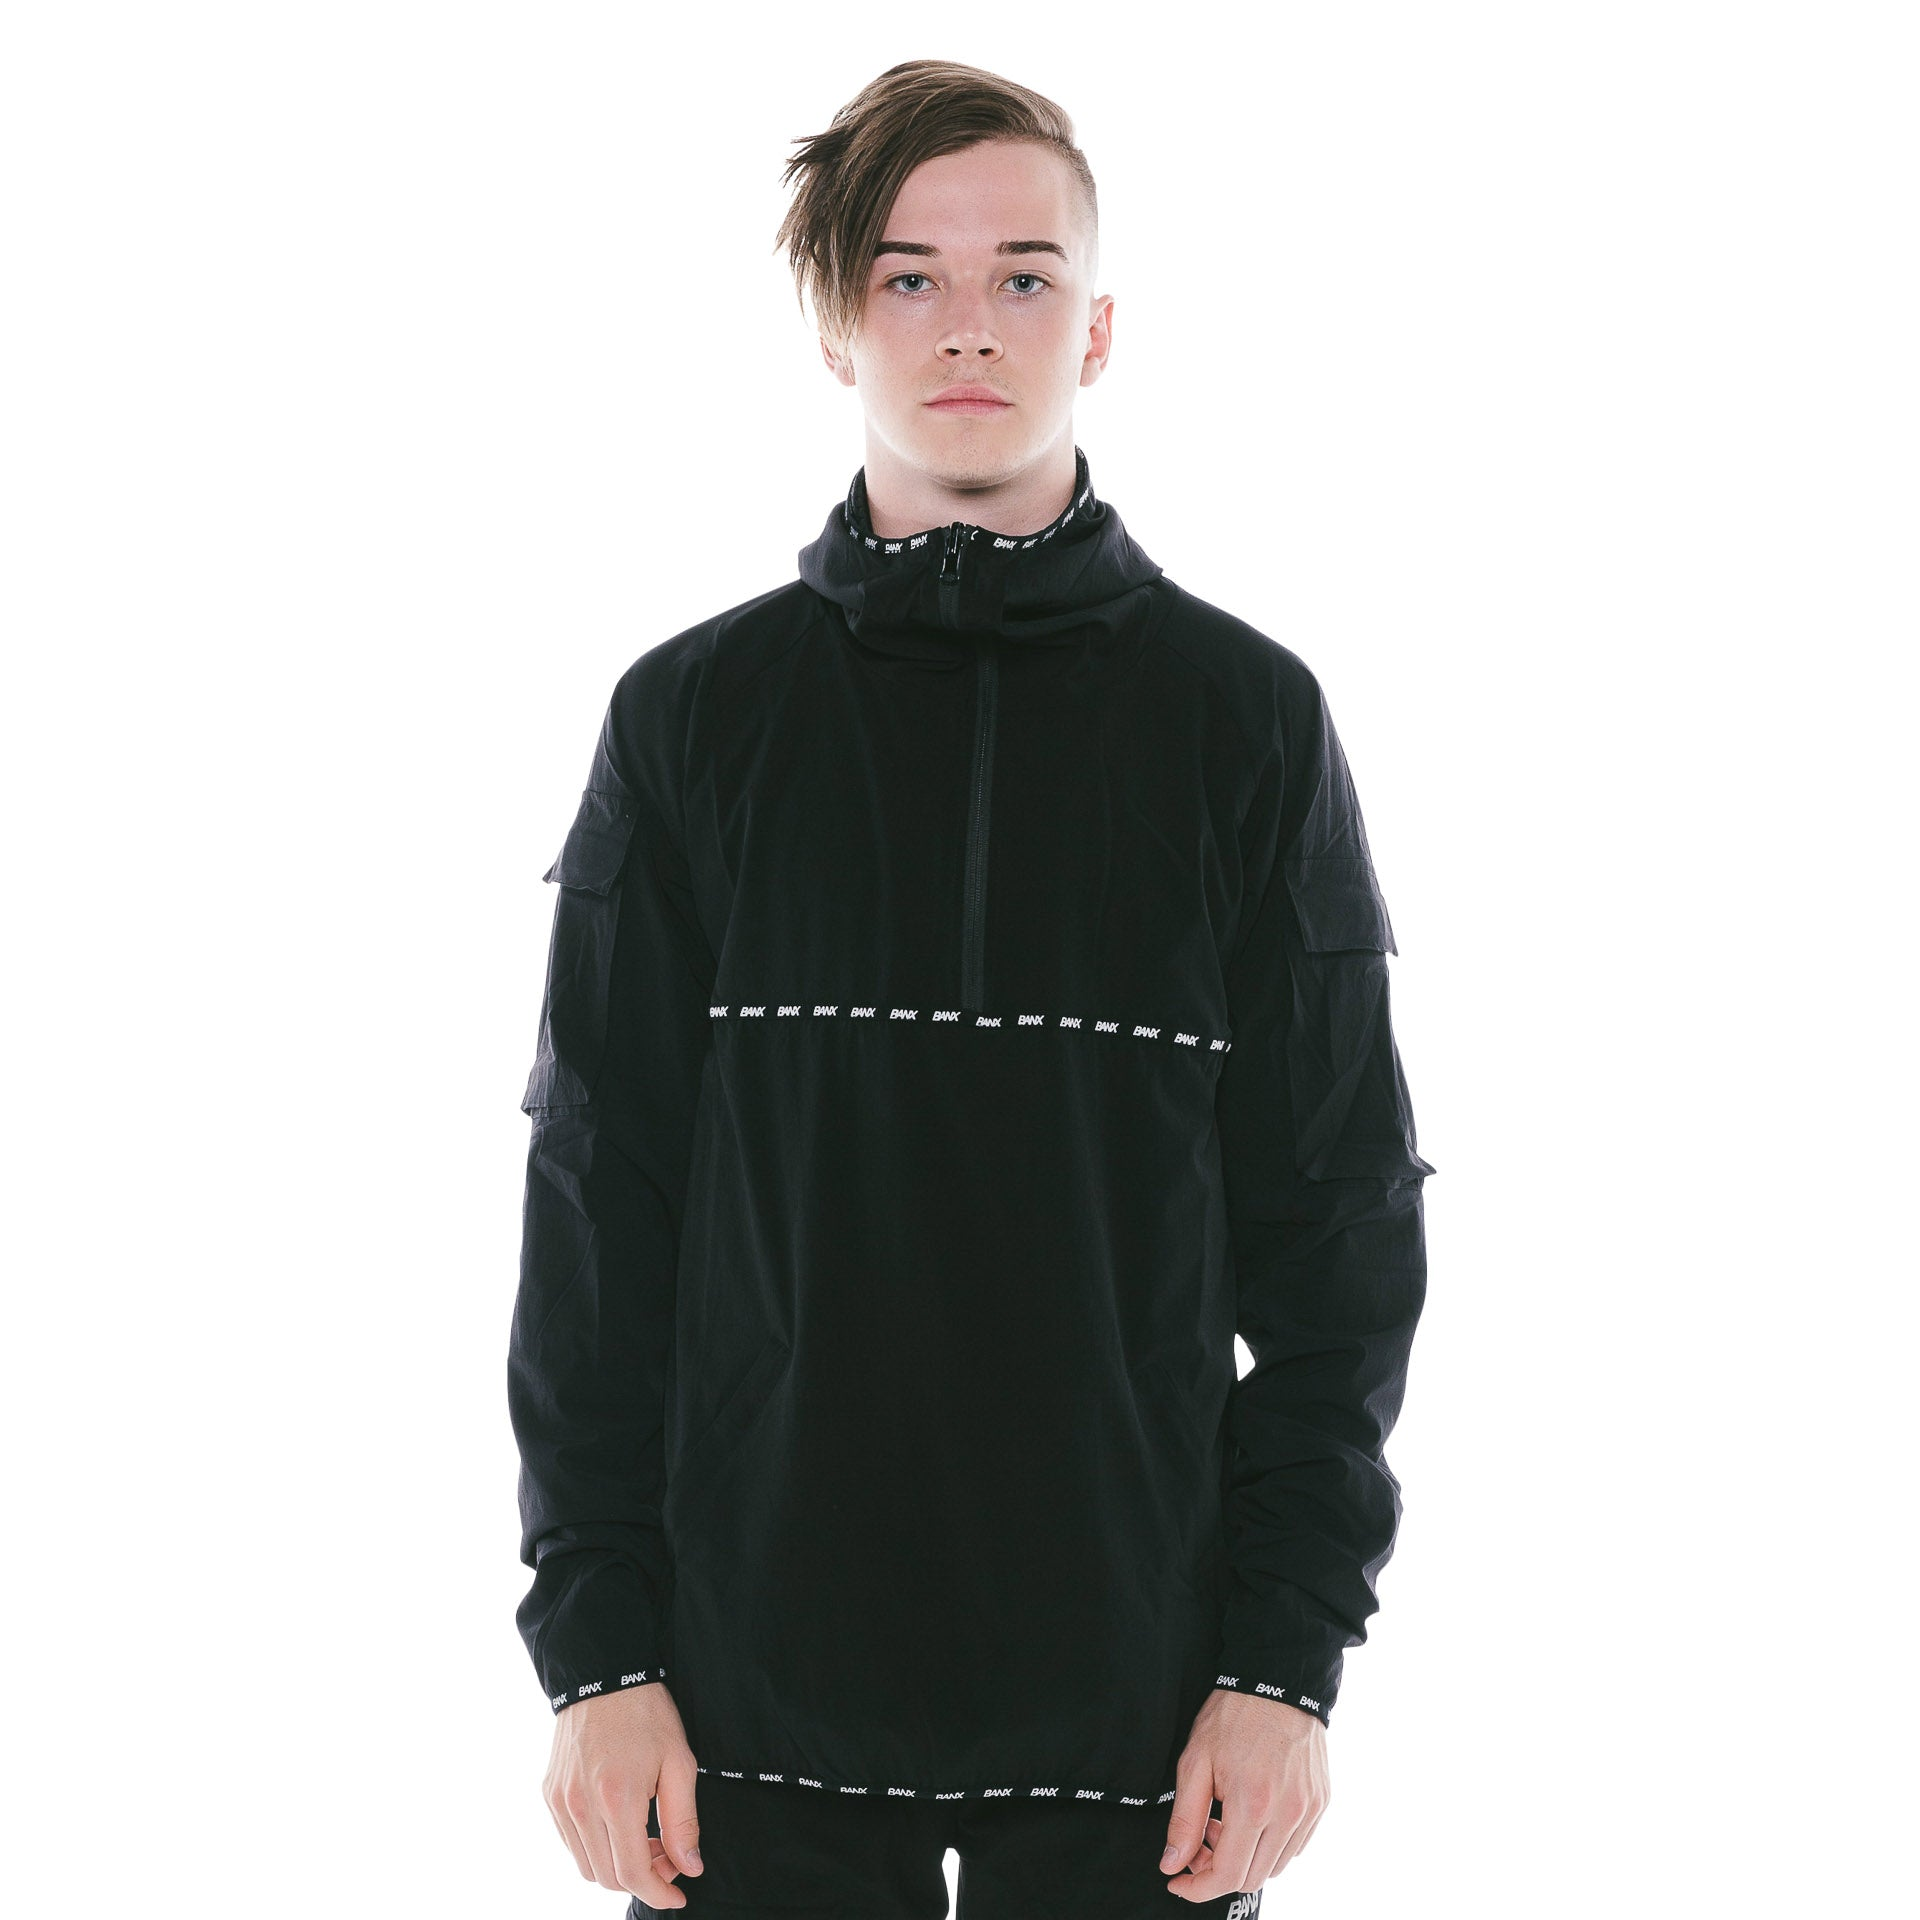 TRACKJACKET - BLACK (REVERSIBLE)